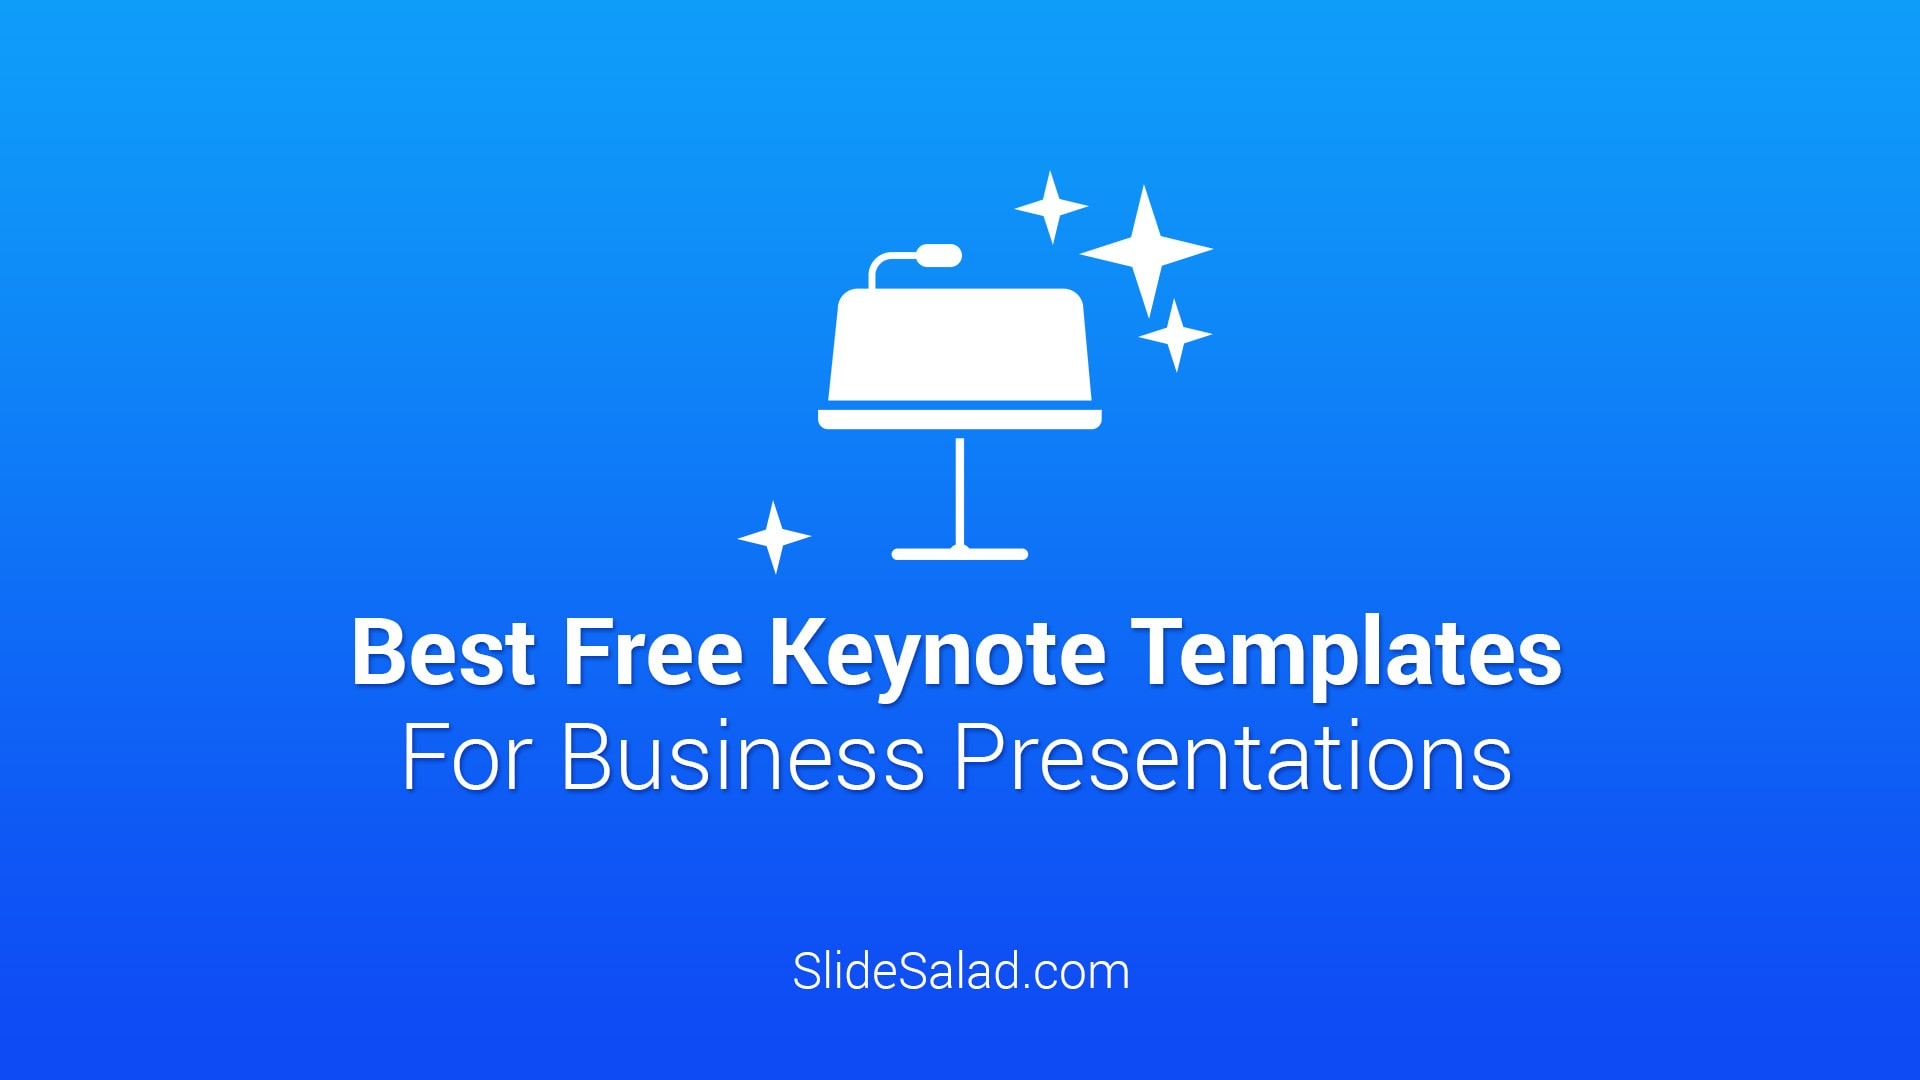 Best Free Keynote Templates for Apple Presentations – Modern Free Keynote Presentation Templates